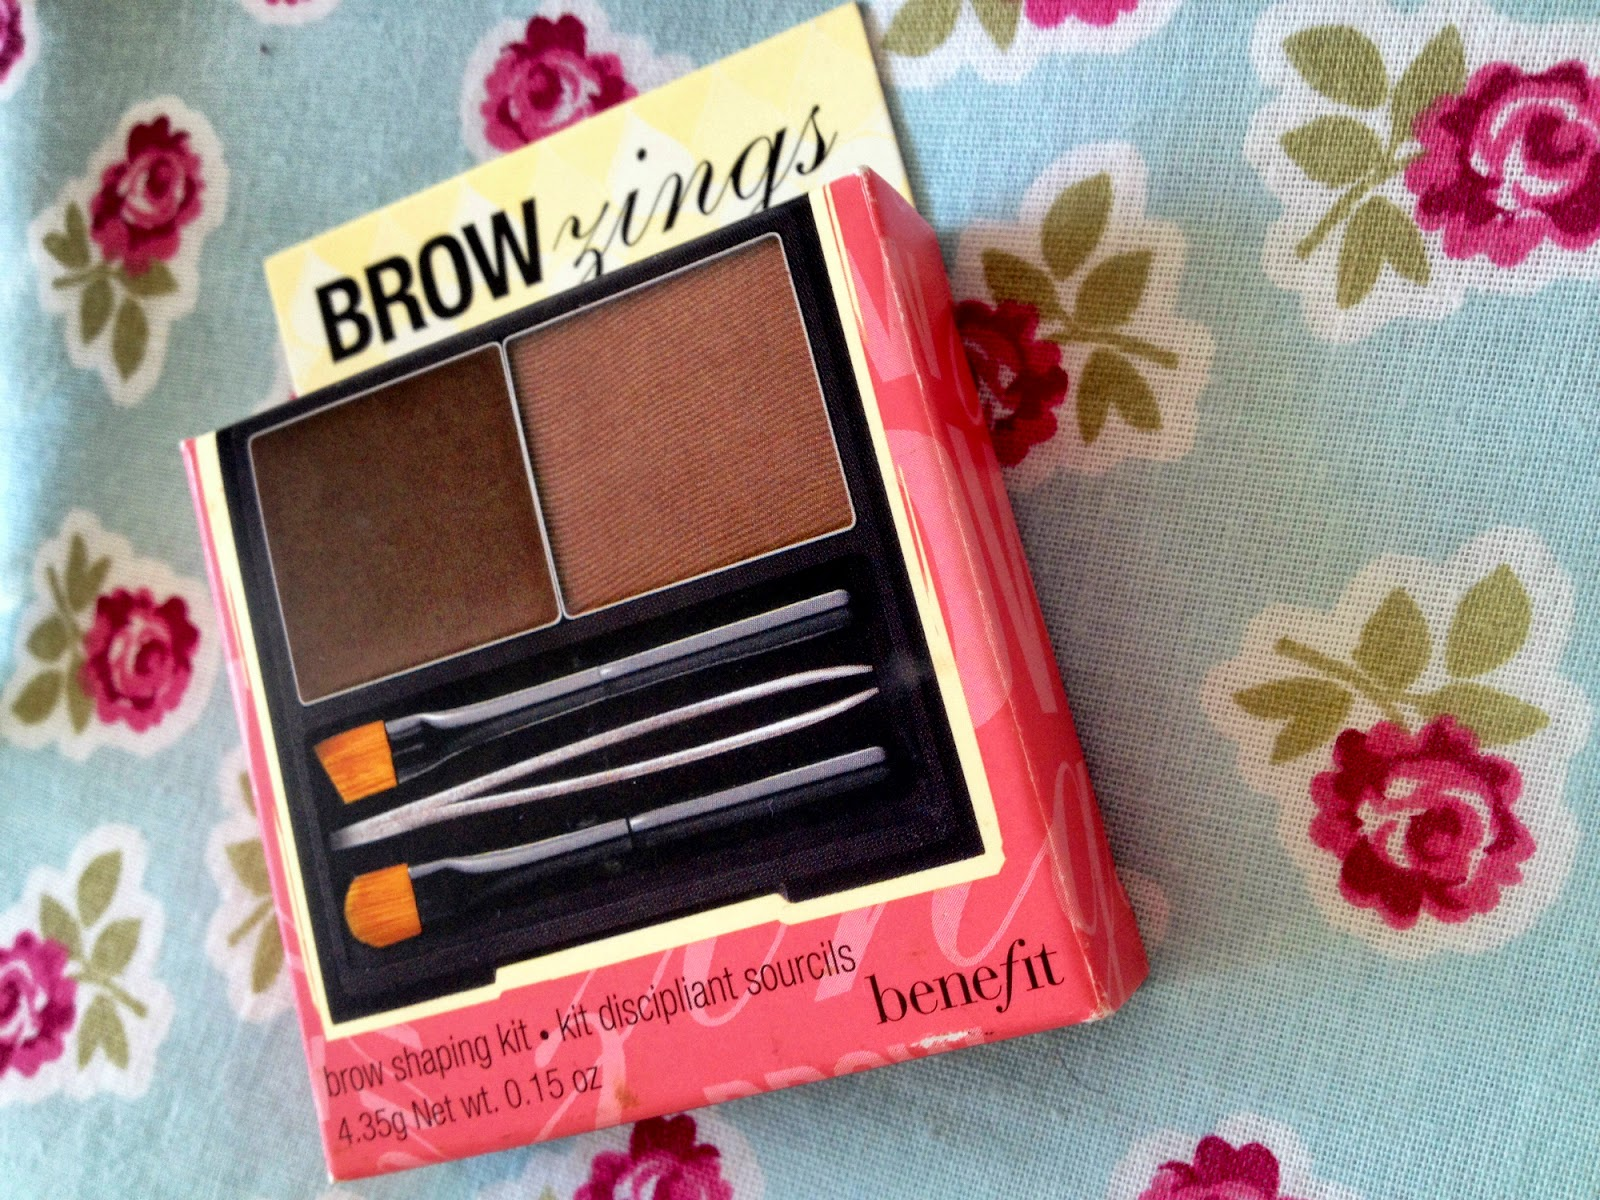 A close up of the brow kit